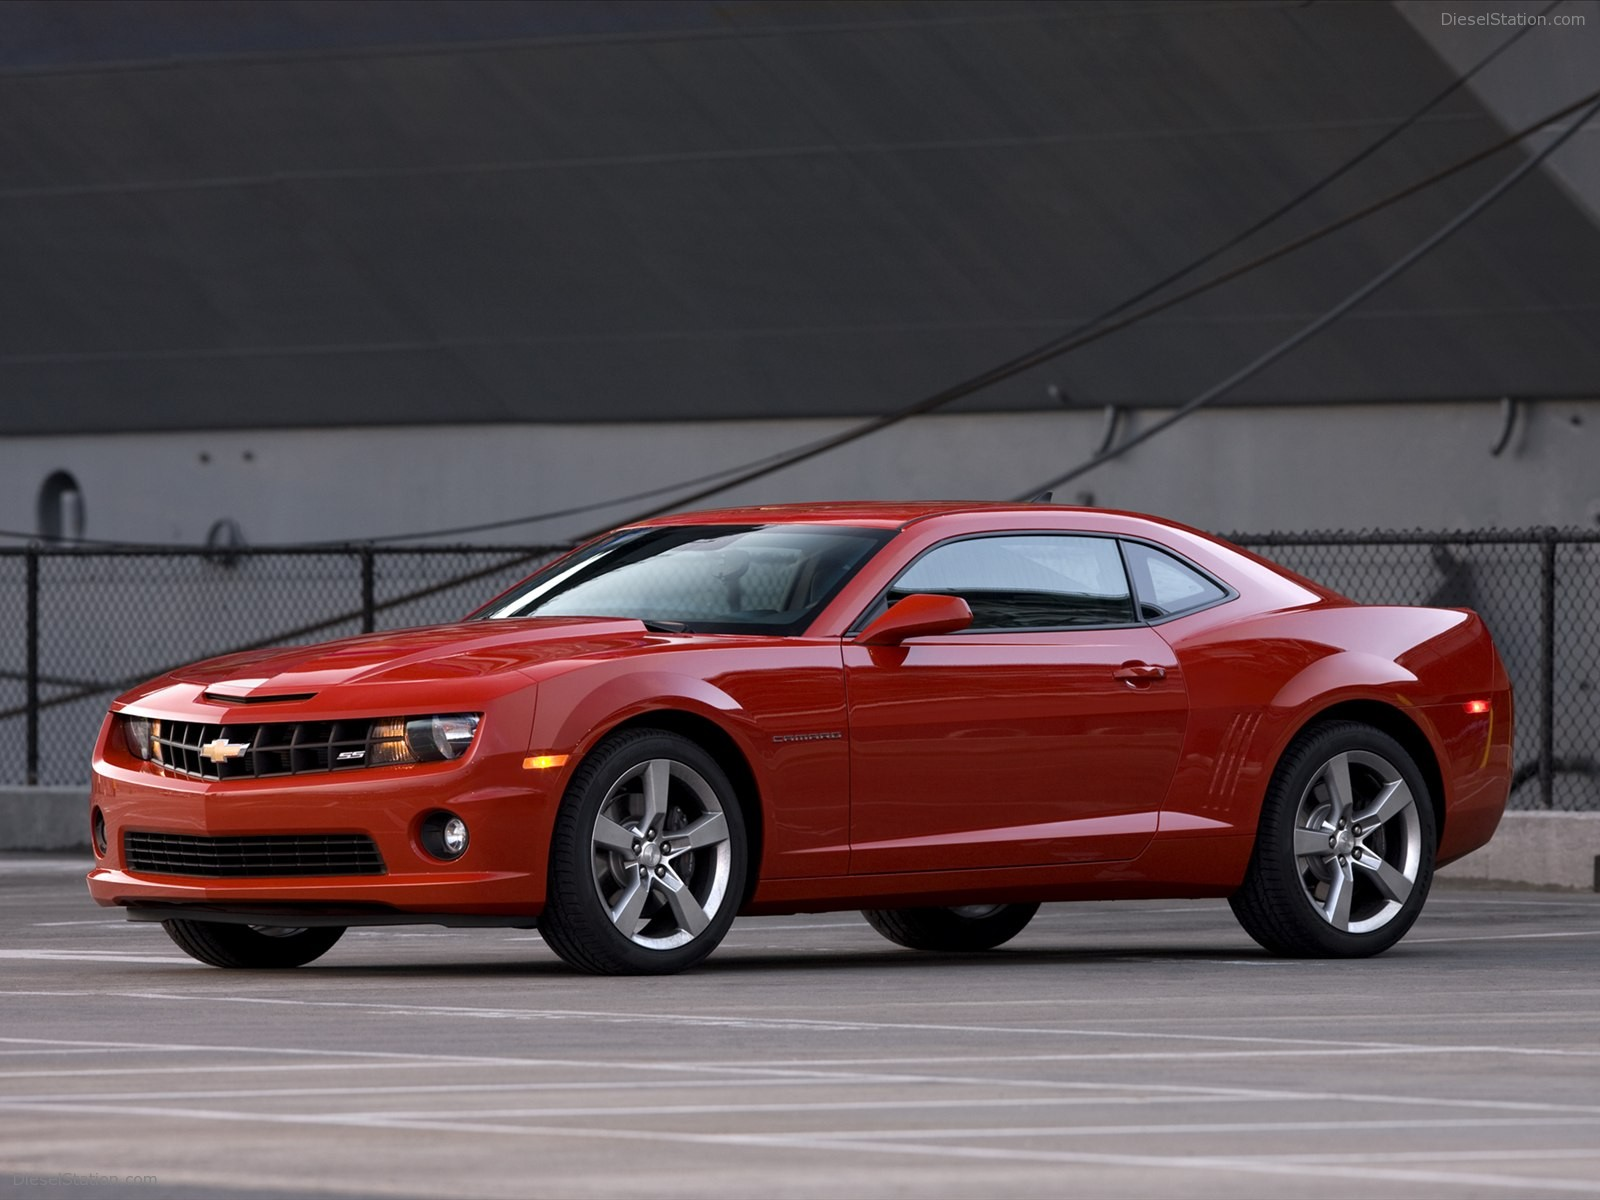 Chevrolet Camaro SS 2012 Exotic Car Wallpapers 02 of 24 Diesel 1600x1200